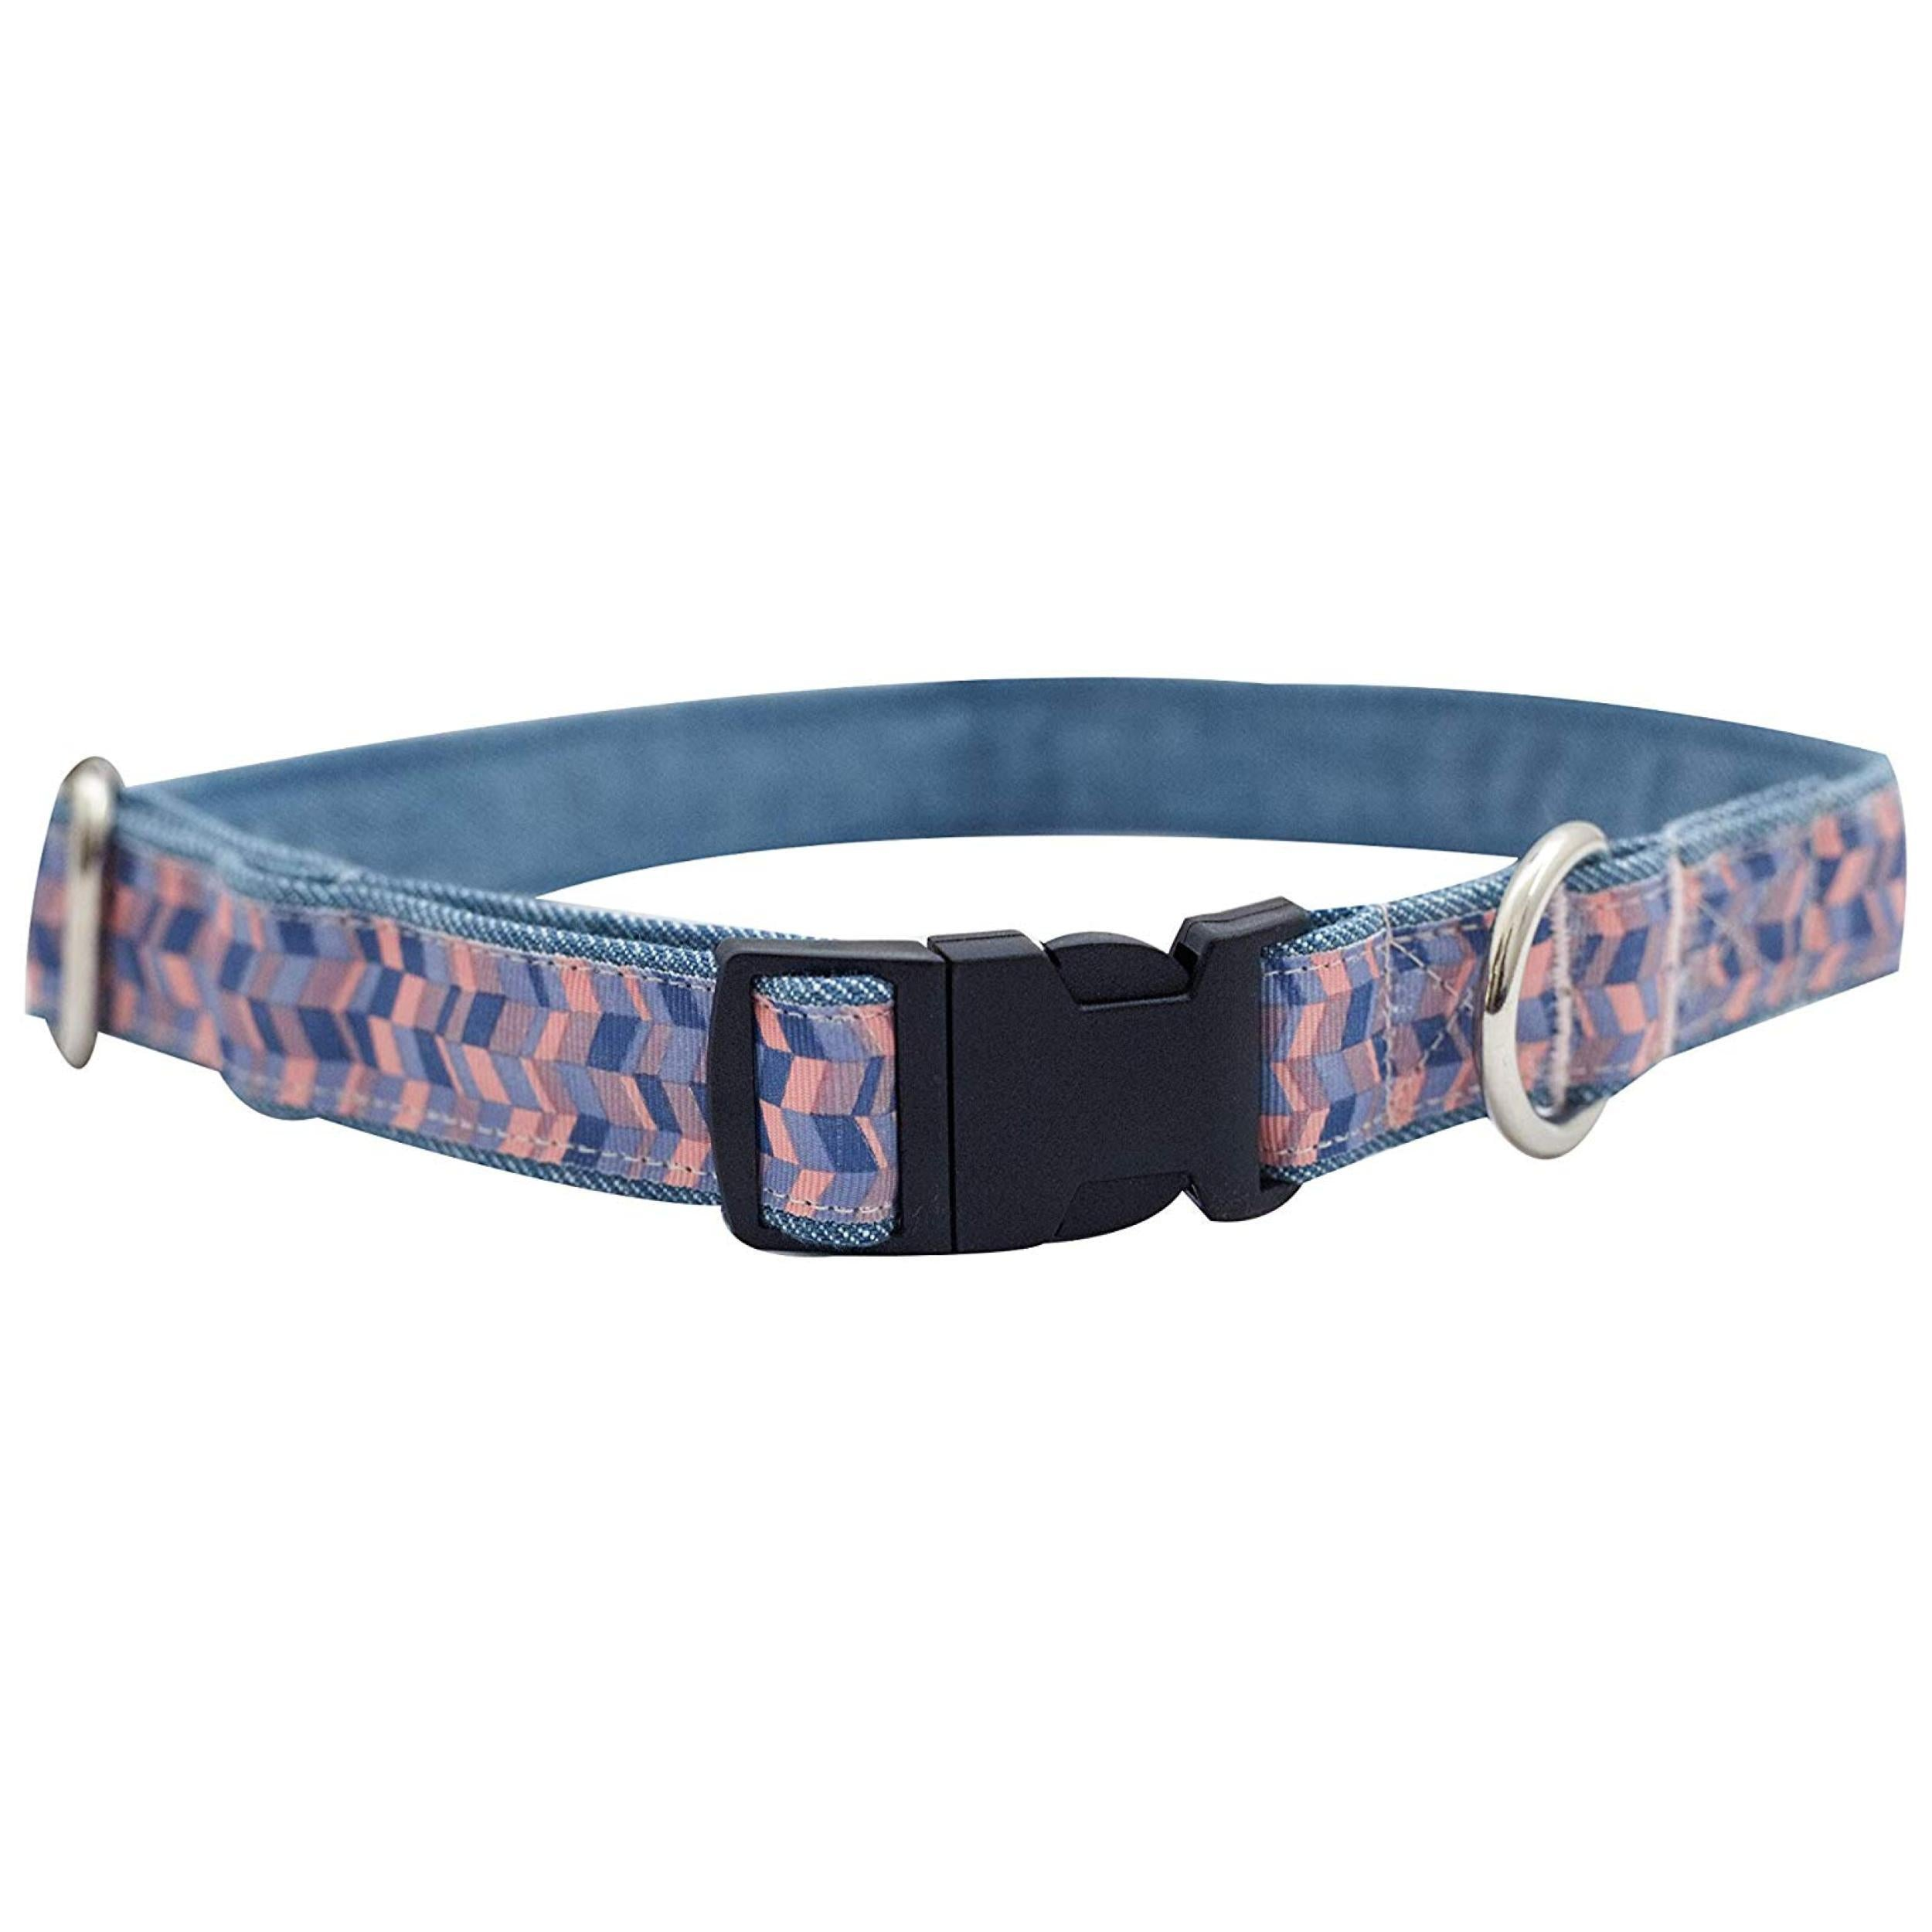 Geometrical Collar & Leash Set For Dogs - Poochles